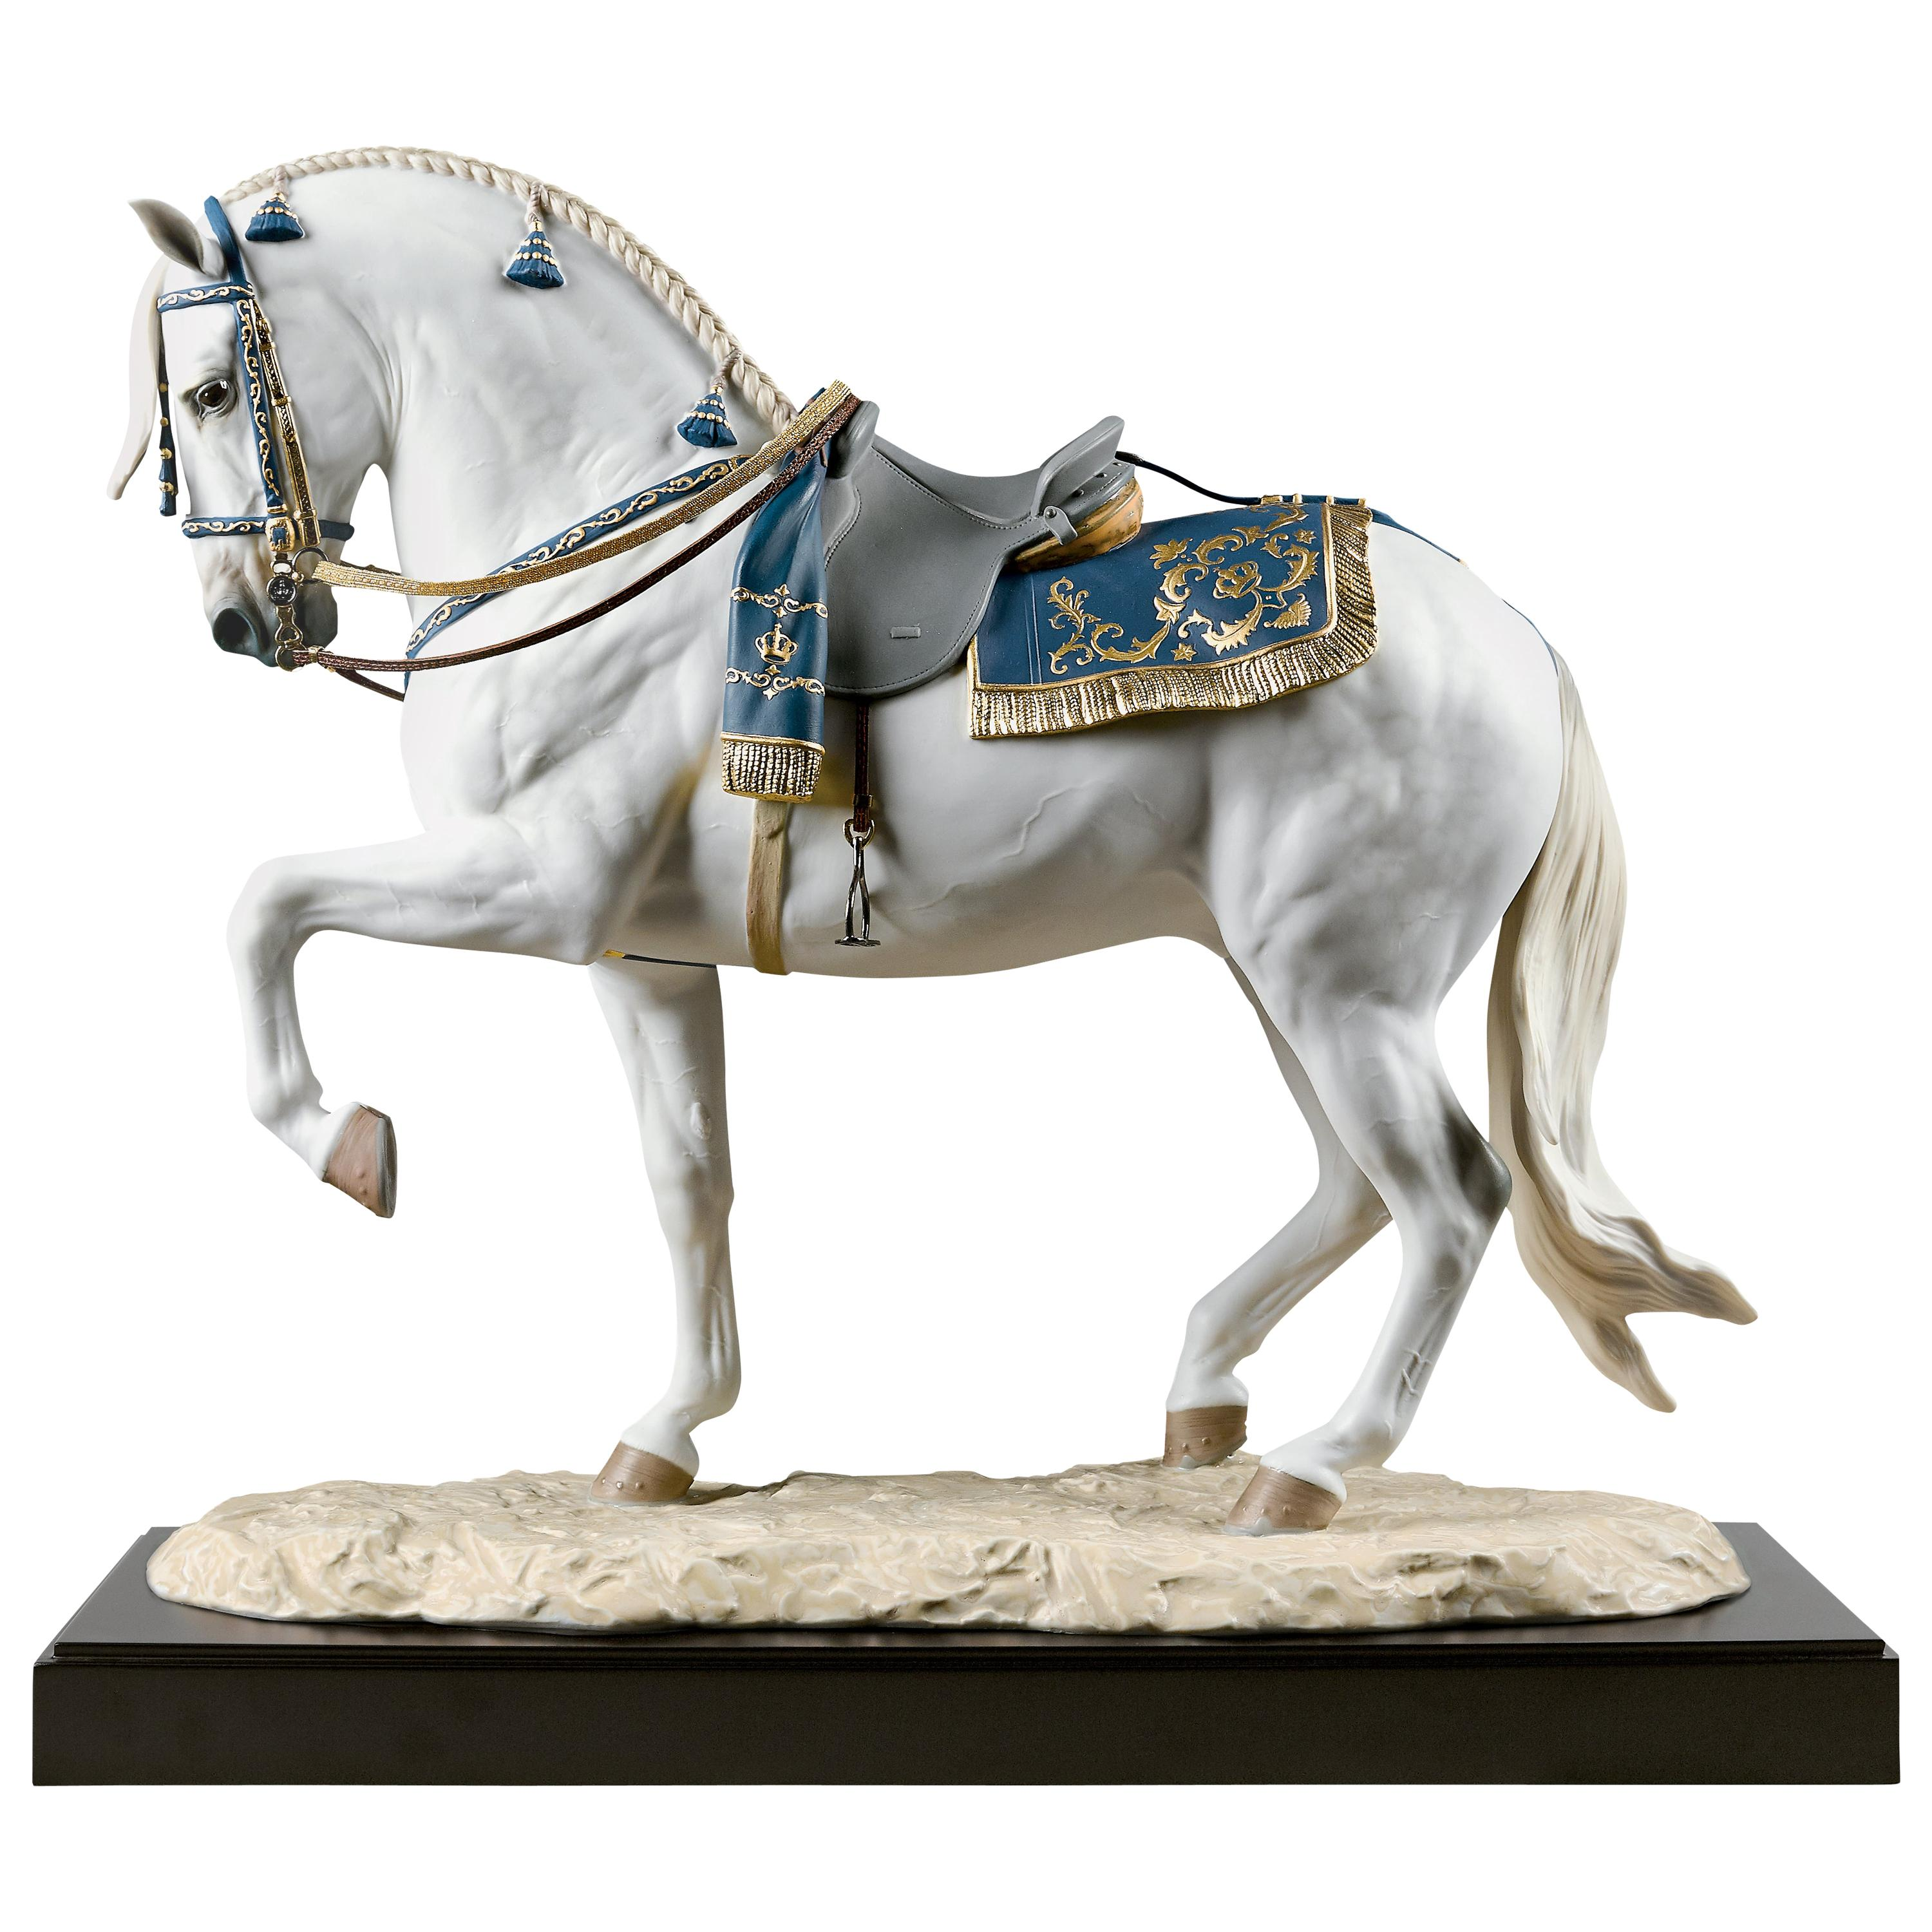 Spanish Pure Breed Horse Sculpture by Ernest Massuet. Limited Edition.